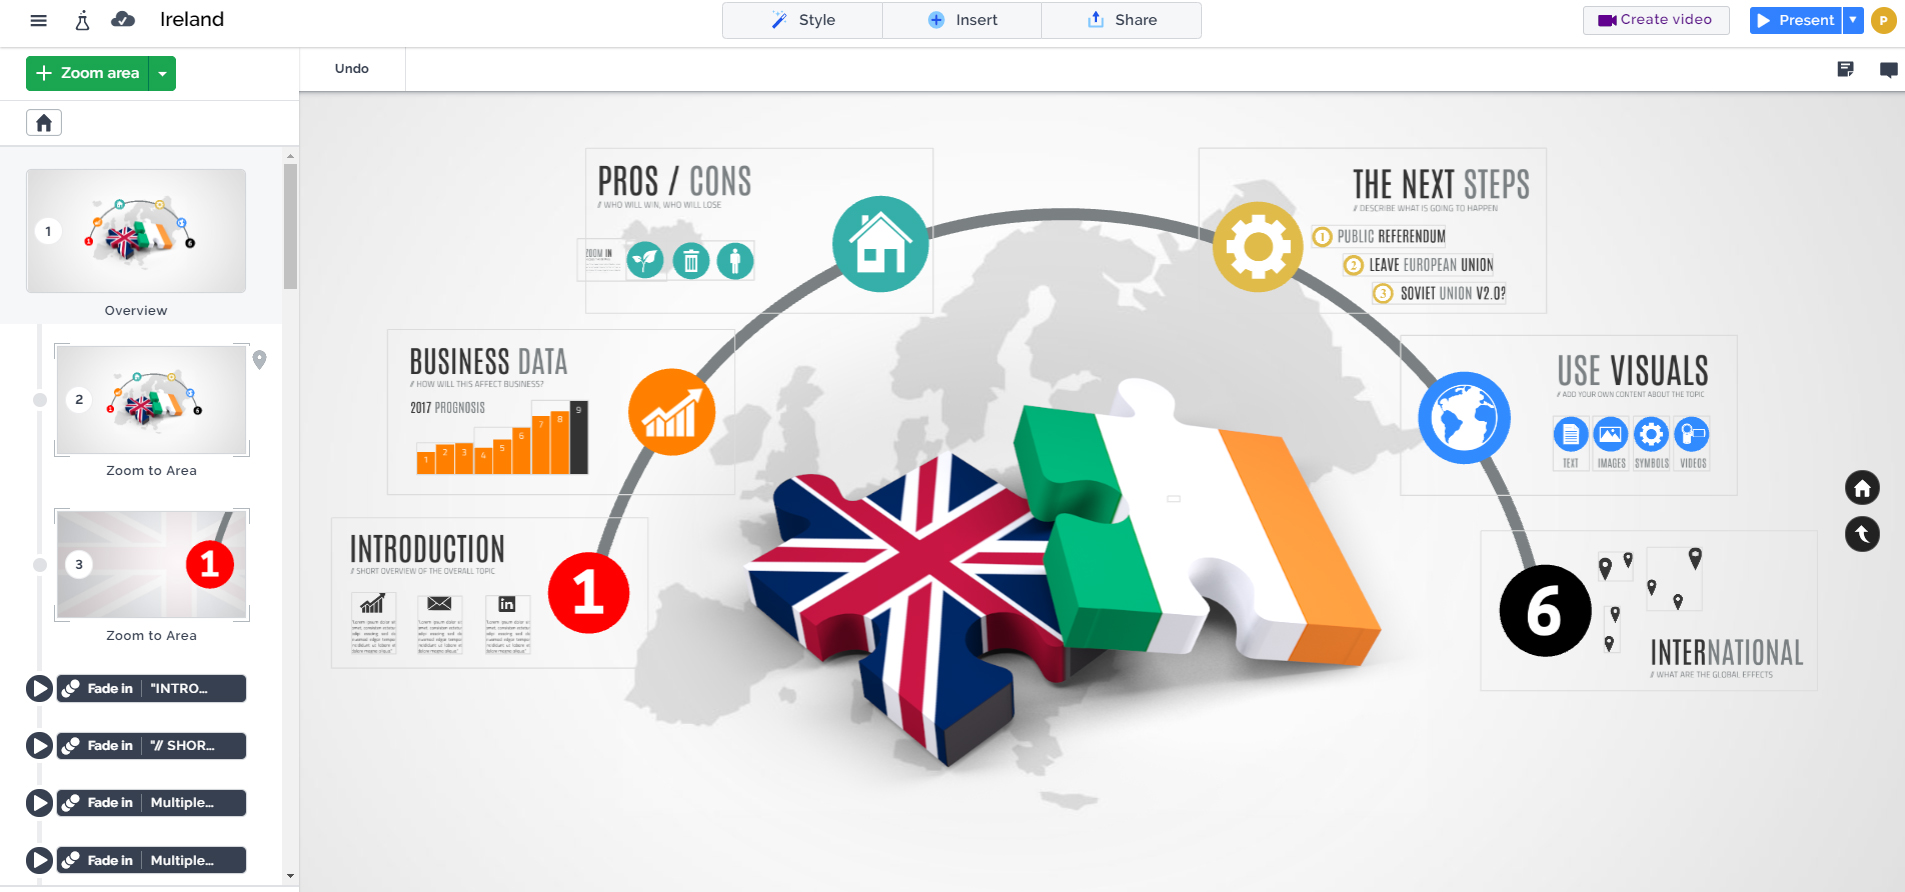 ireland-northern-ireland-united-kingdom-conflict-presentation-prezi-template